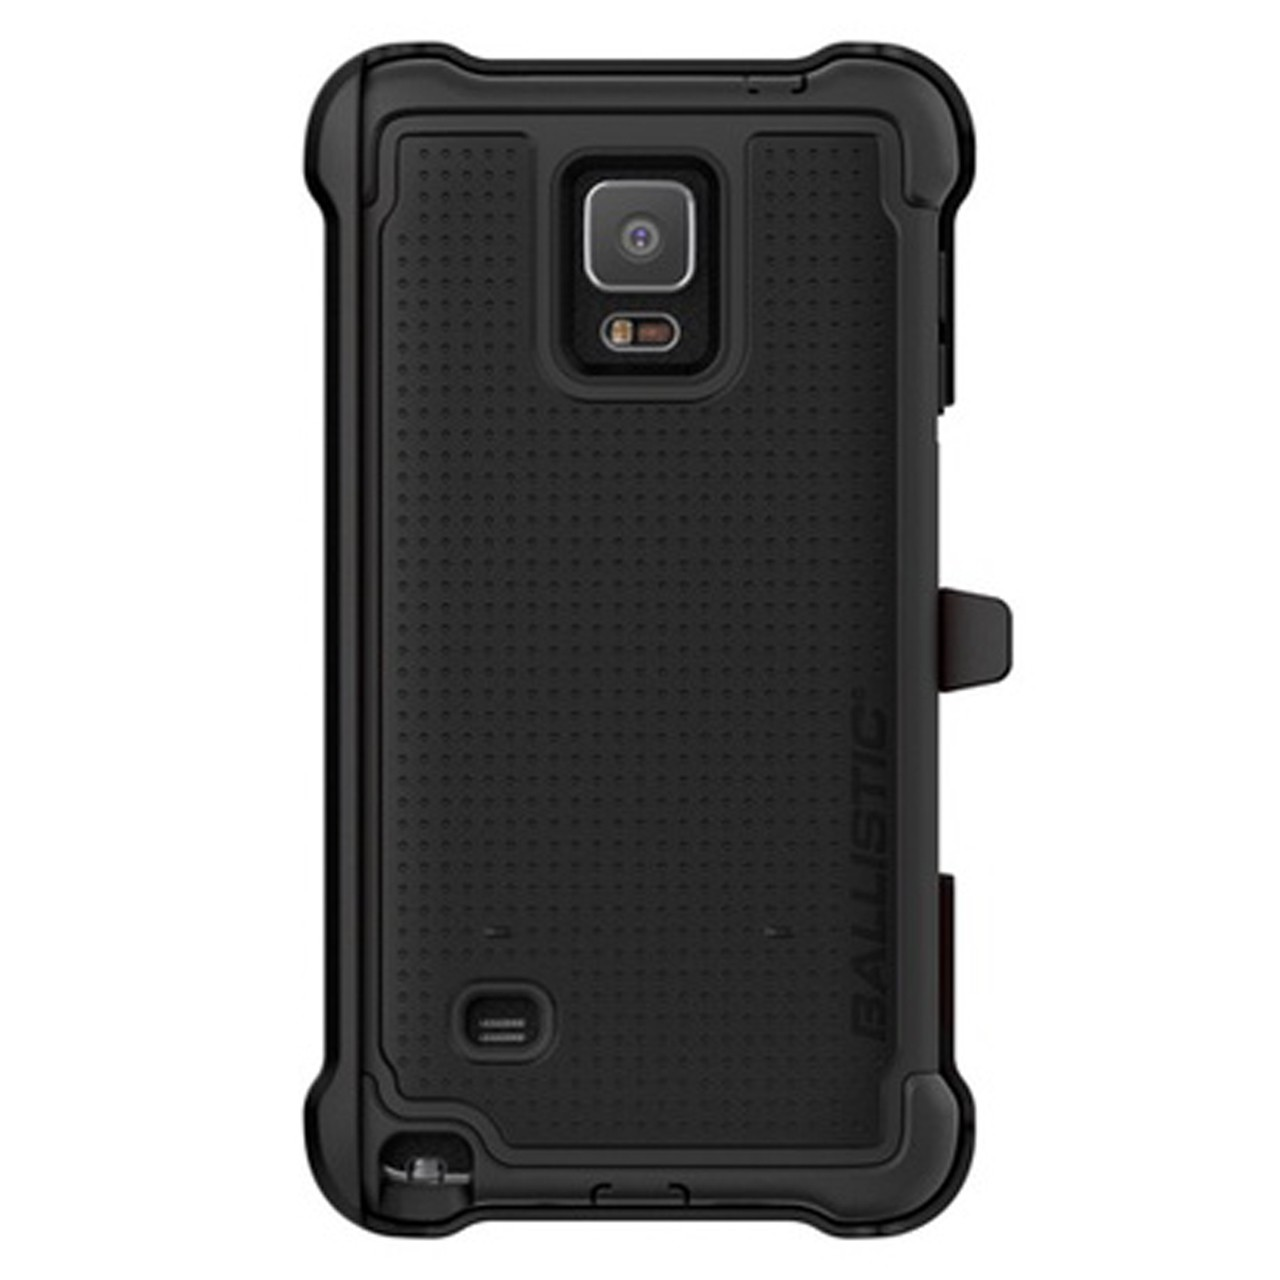 Ballistic Tough Jacket Maxx Case for Samsung Galaxy Note 4 - Black/Black